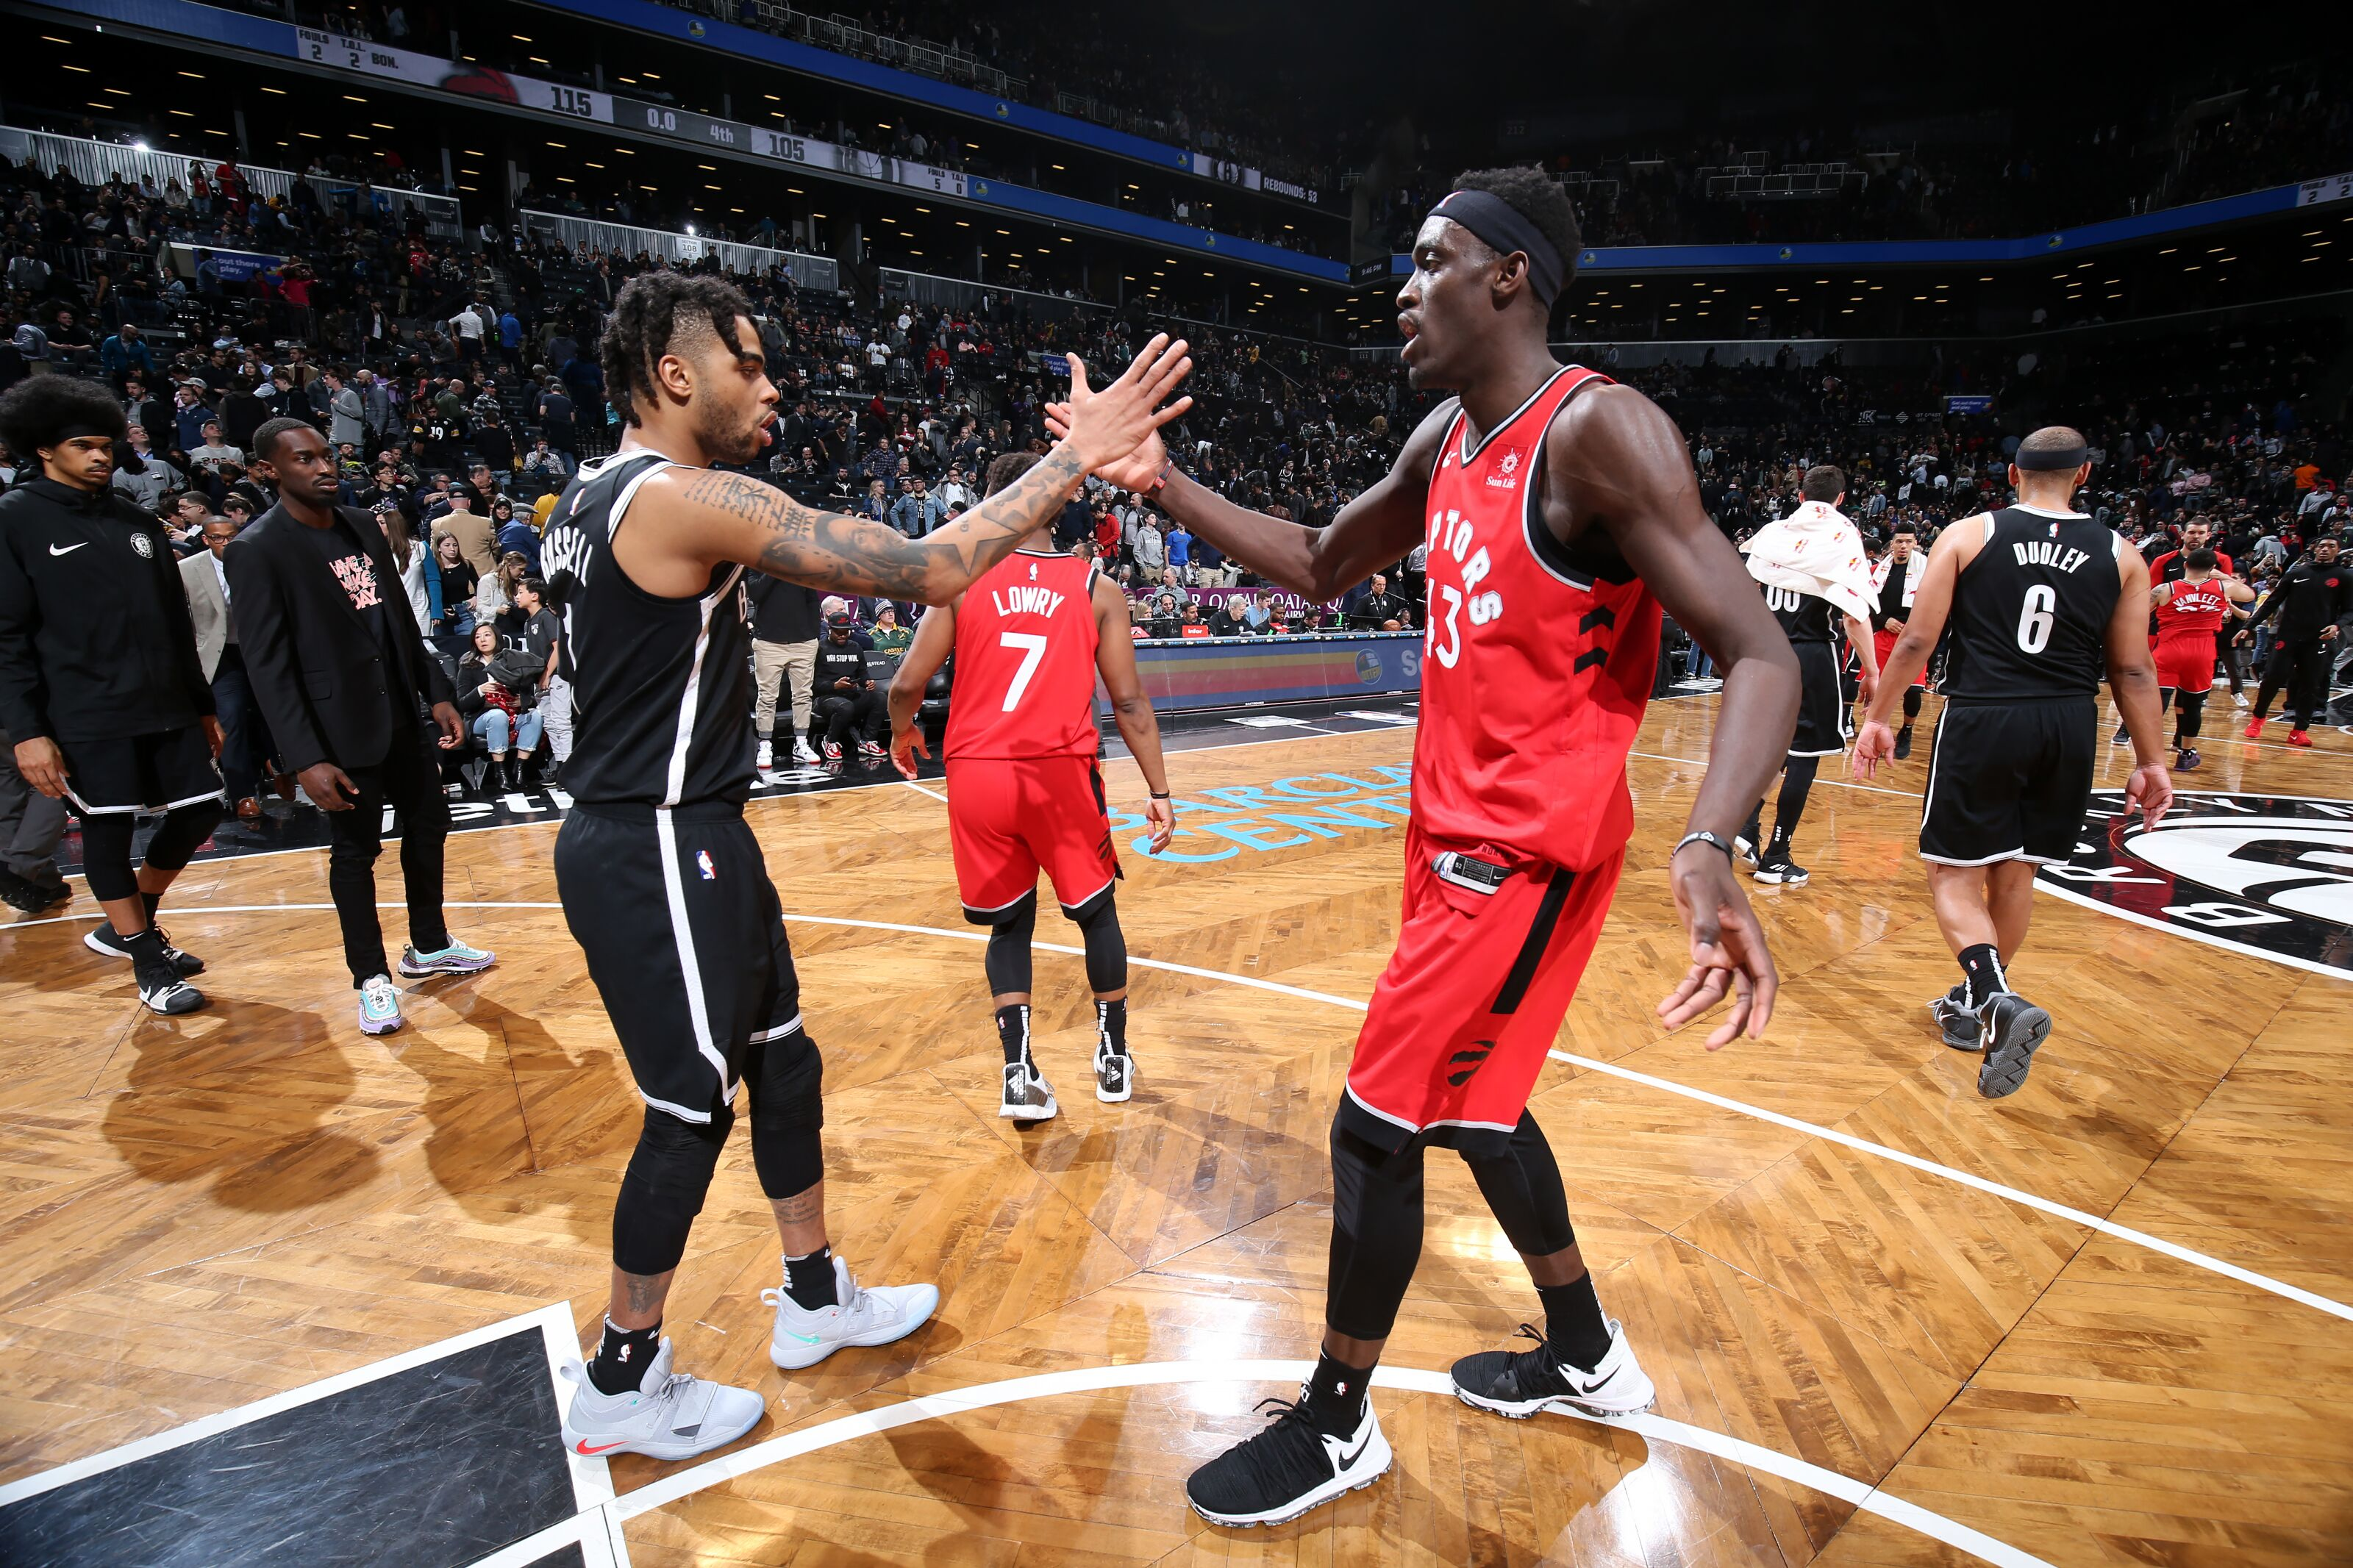 Brooklyn Nets: Pascal Siakam right choice over D'Angelo Russell for MIP